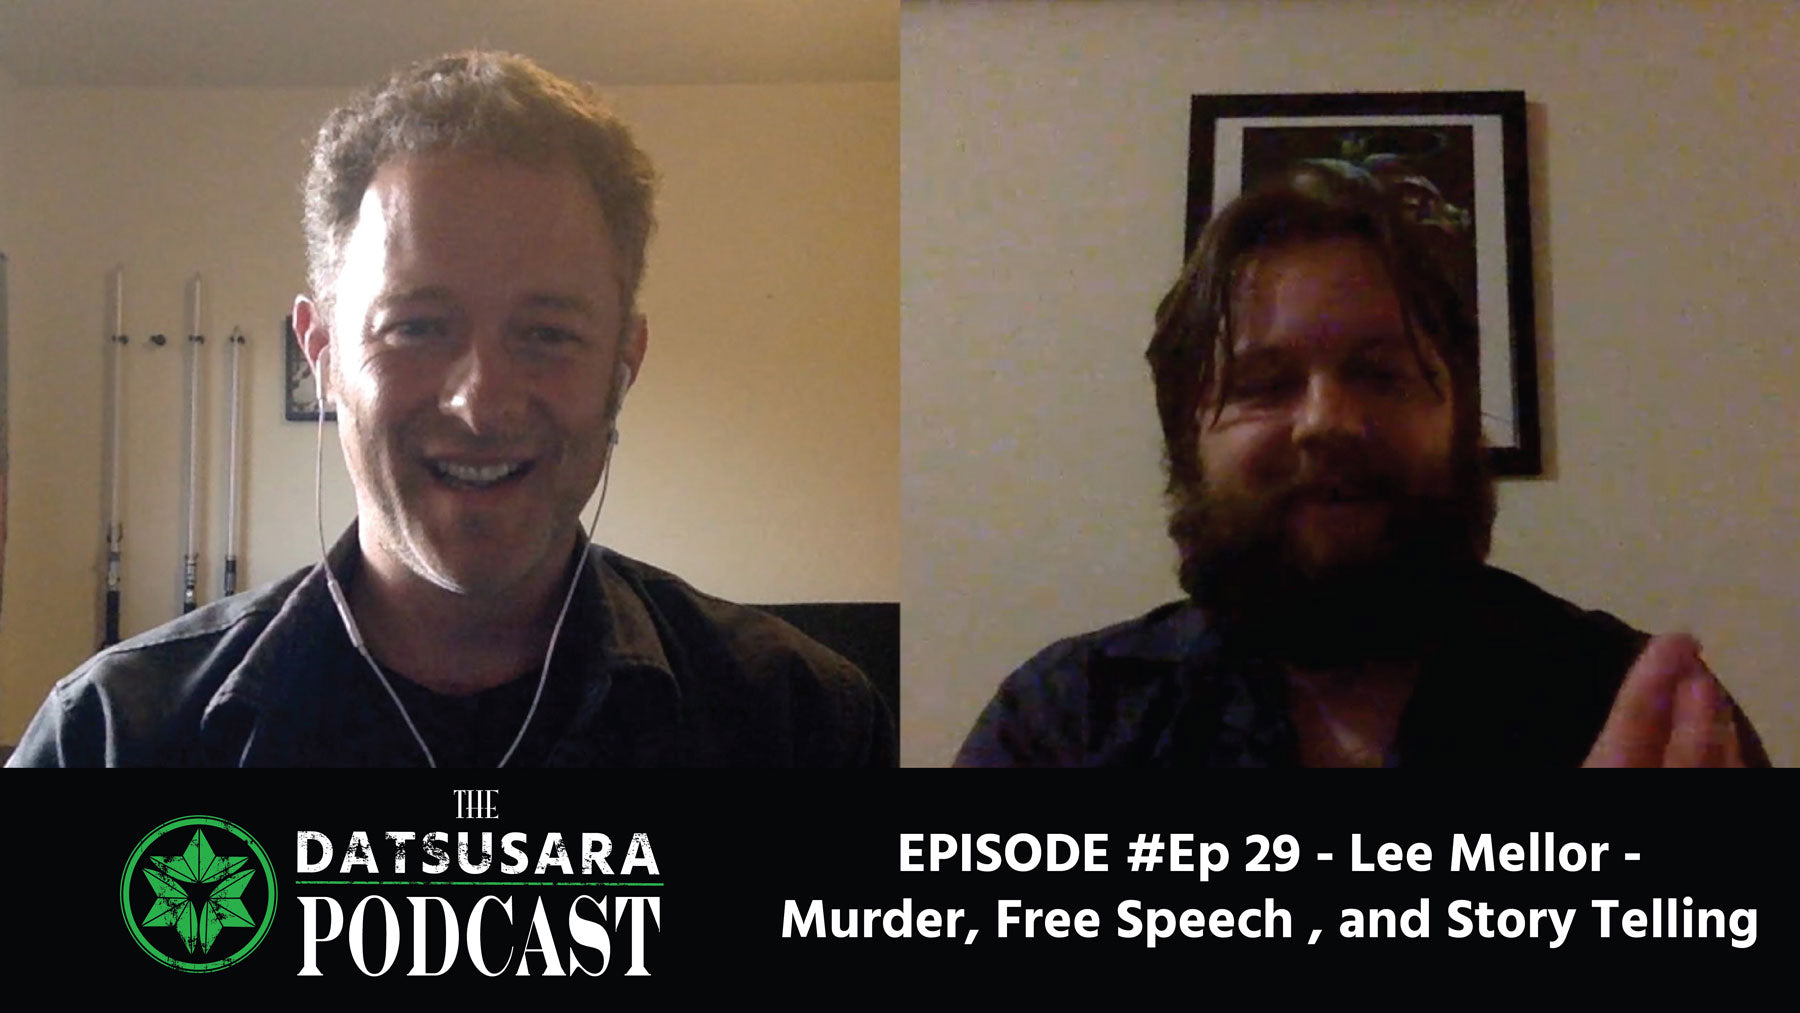 #29 - Lee Mellor - Murder, Free Speech, and Storytelling